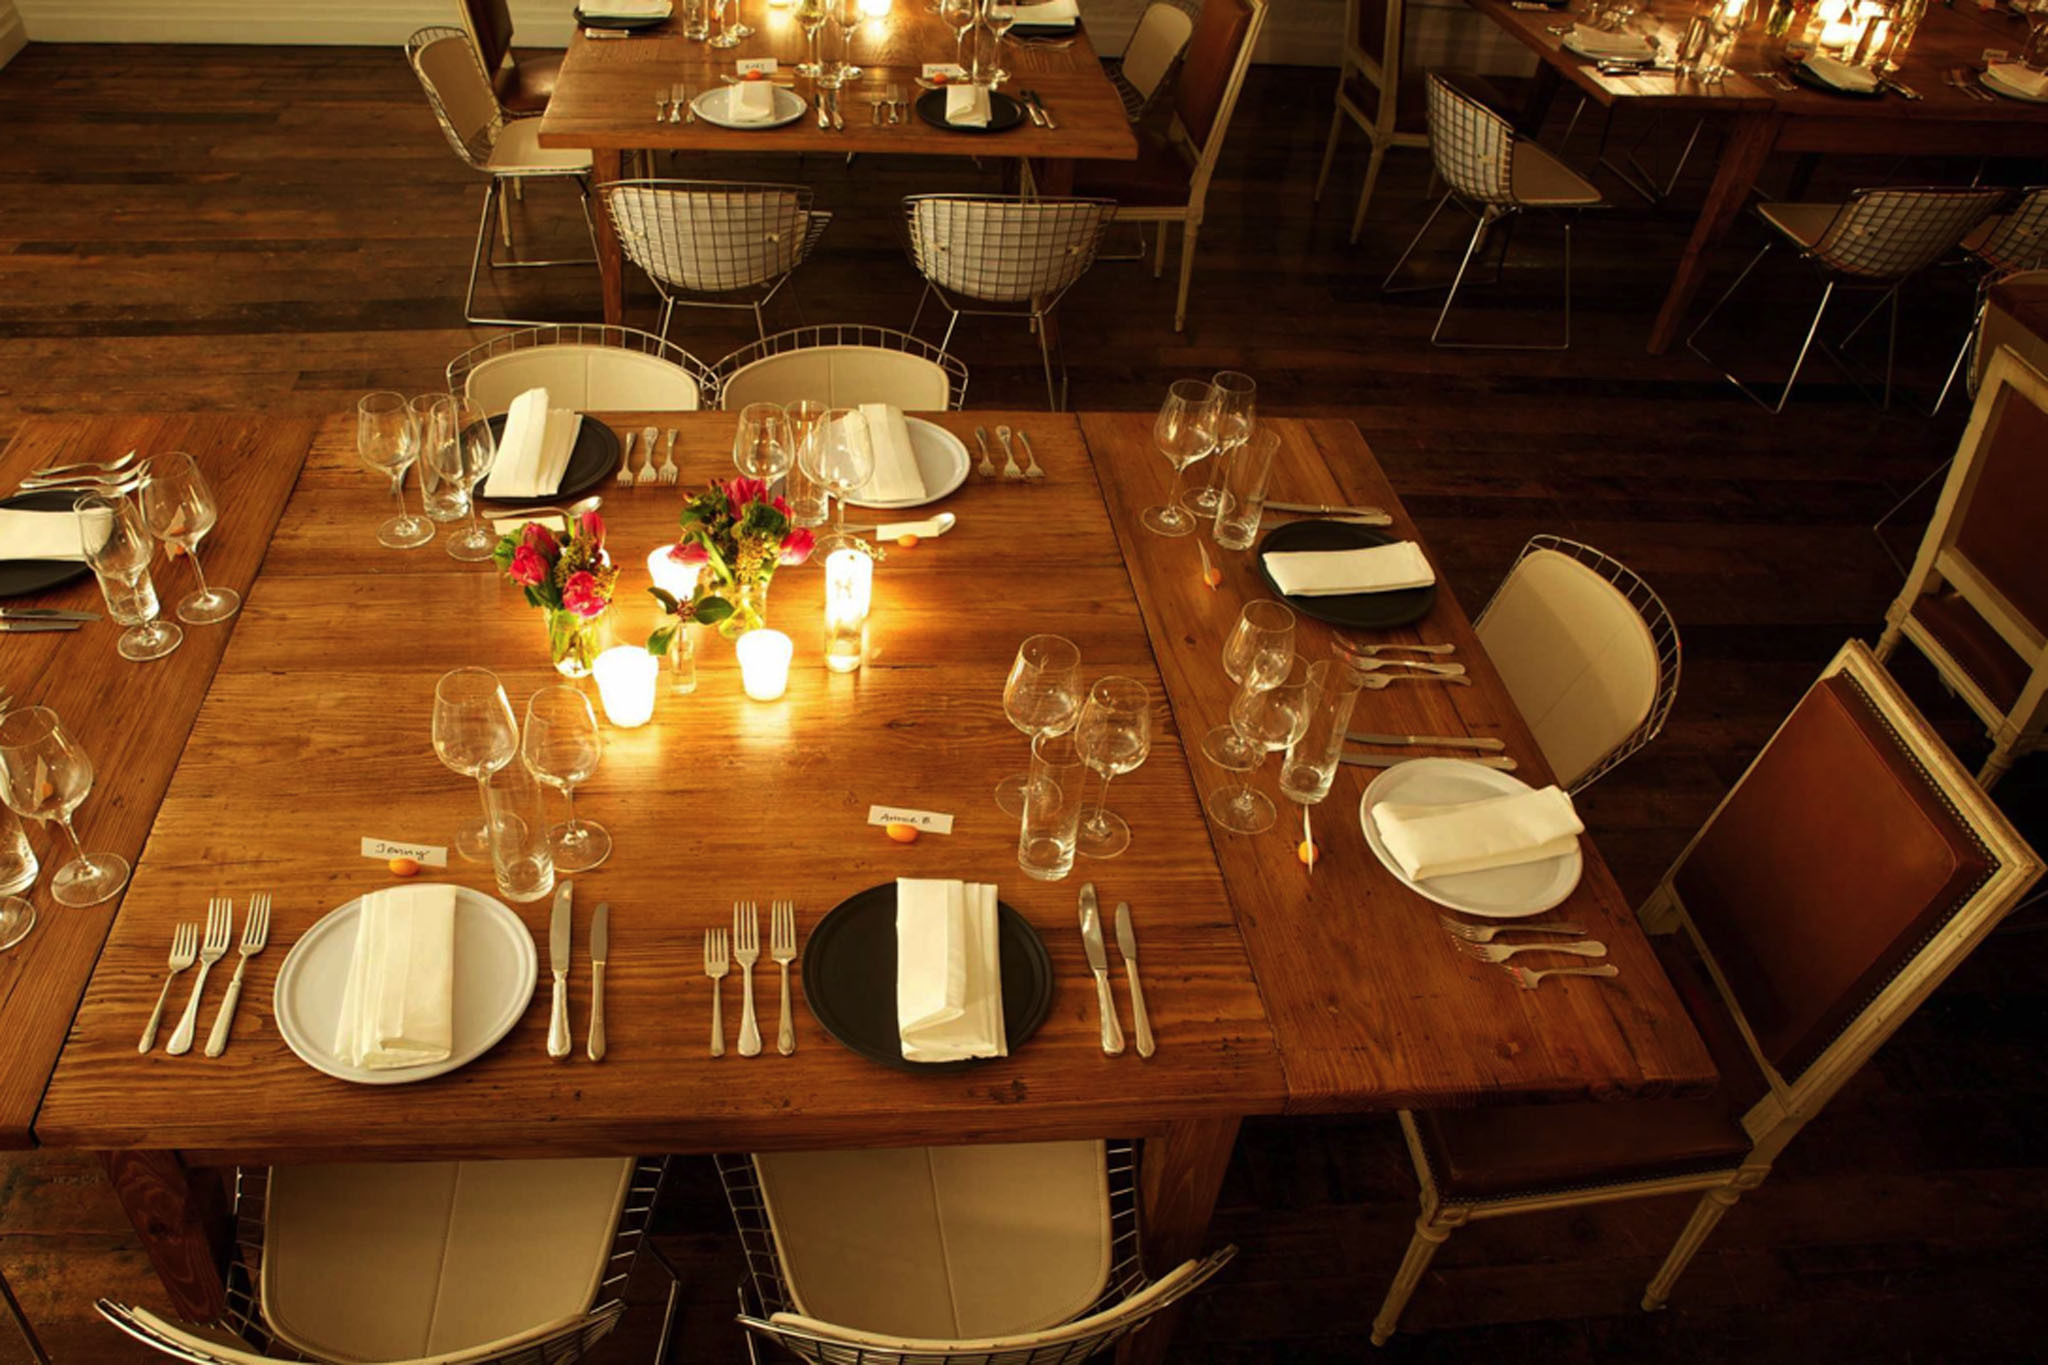 Anniversary date ideas in nyc for a romantic dinner or fun event havens kitchen negle Gallery